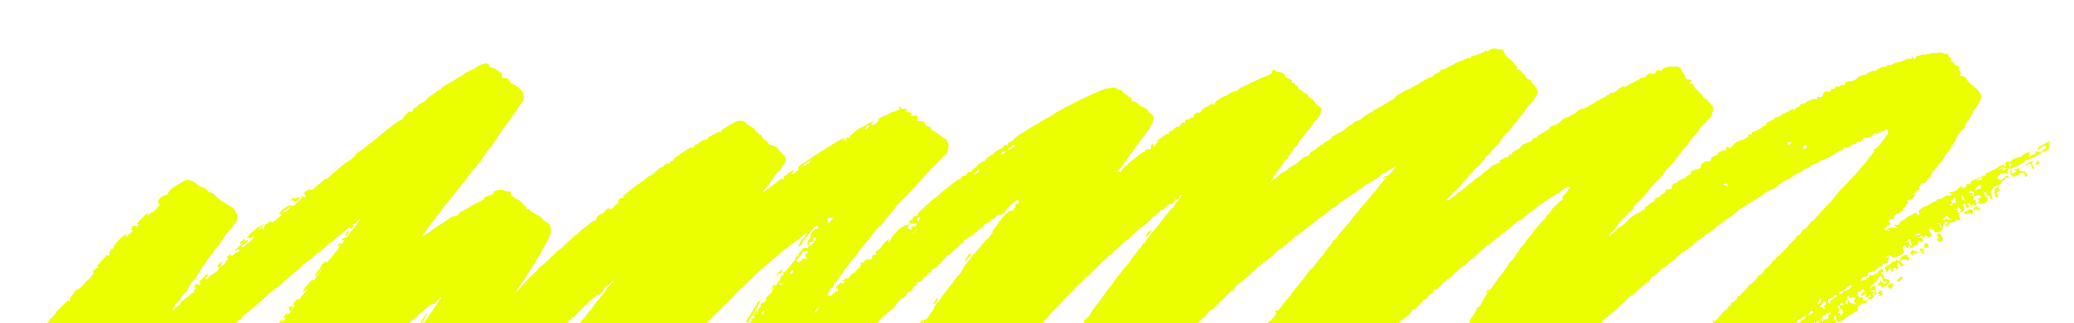 Mark Yellow 1